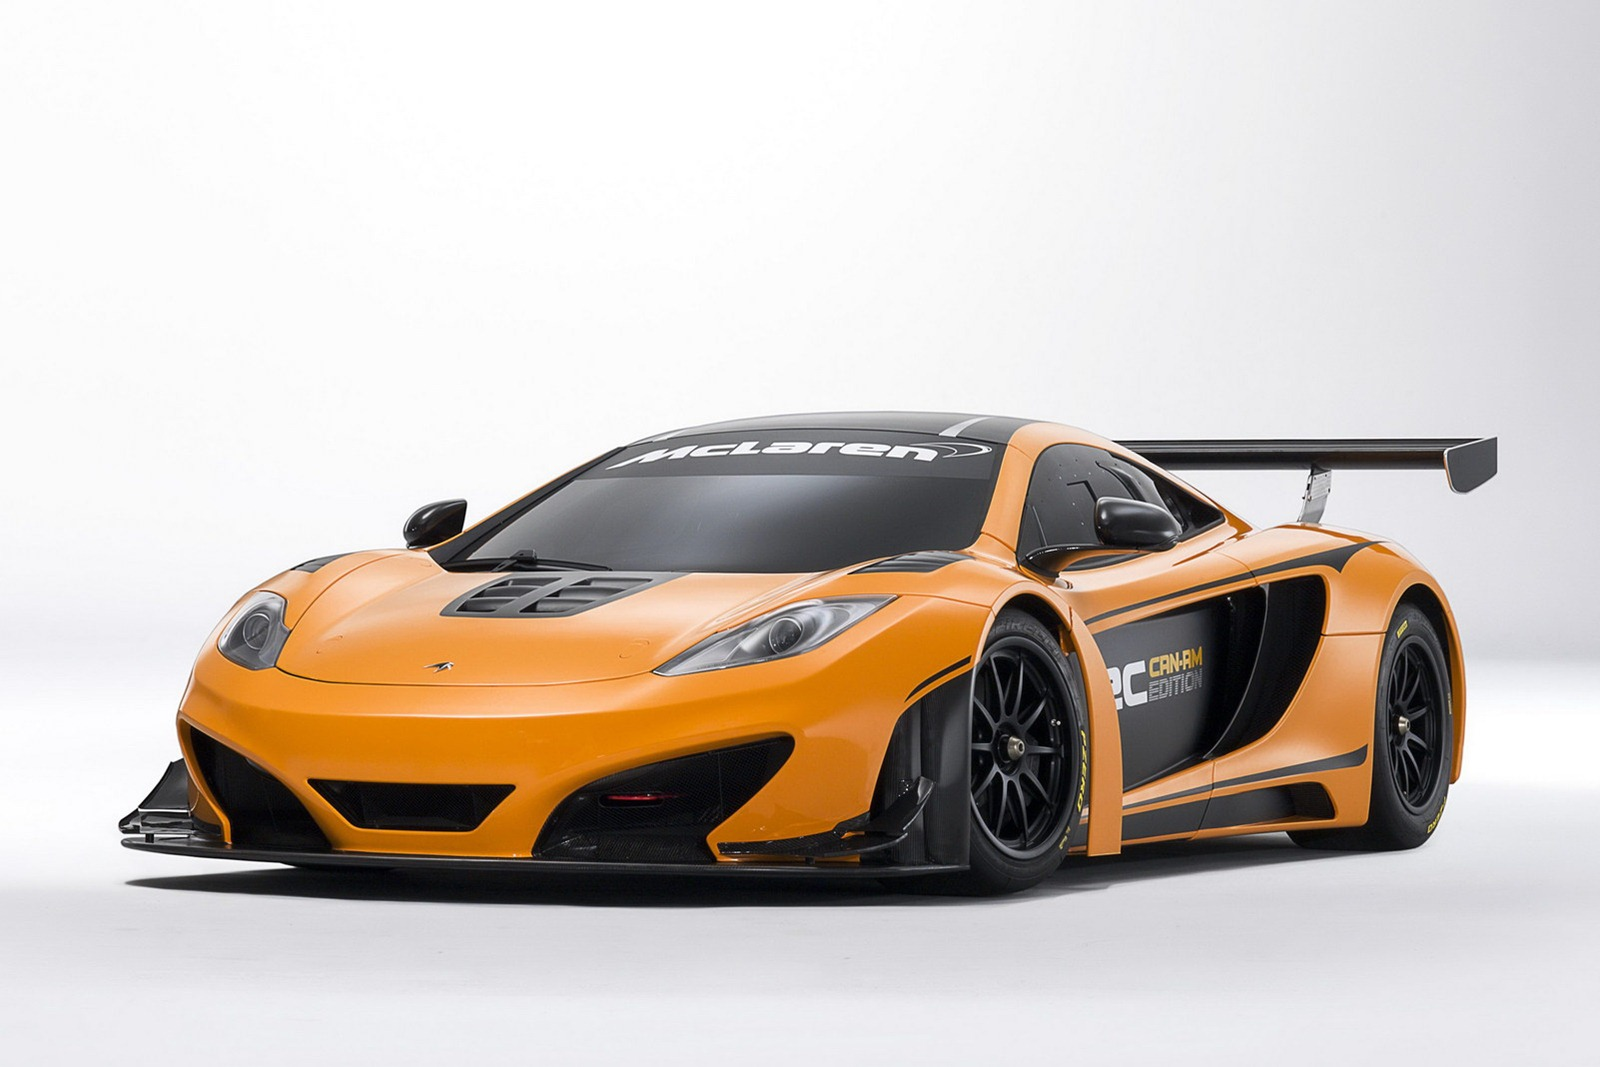 2013 McLaren 12C Can Am Edition Concept 2013 McLaren 12C Can Am Edition Concept with 630HP